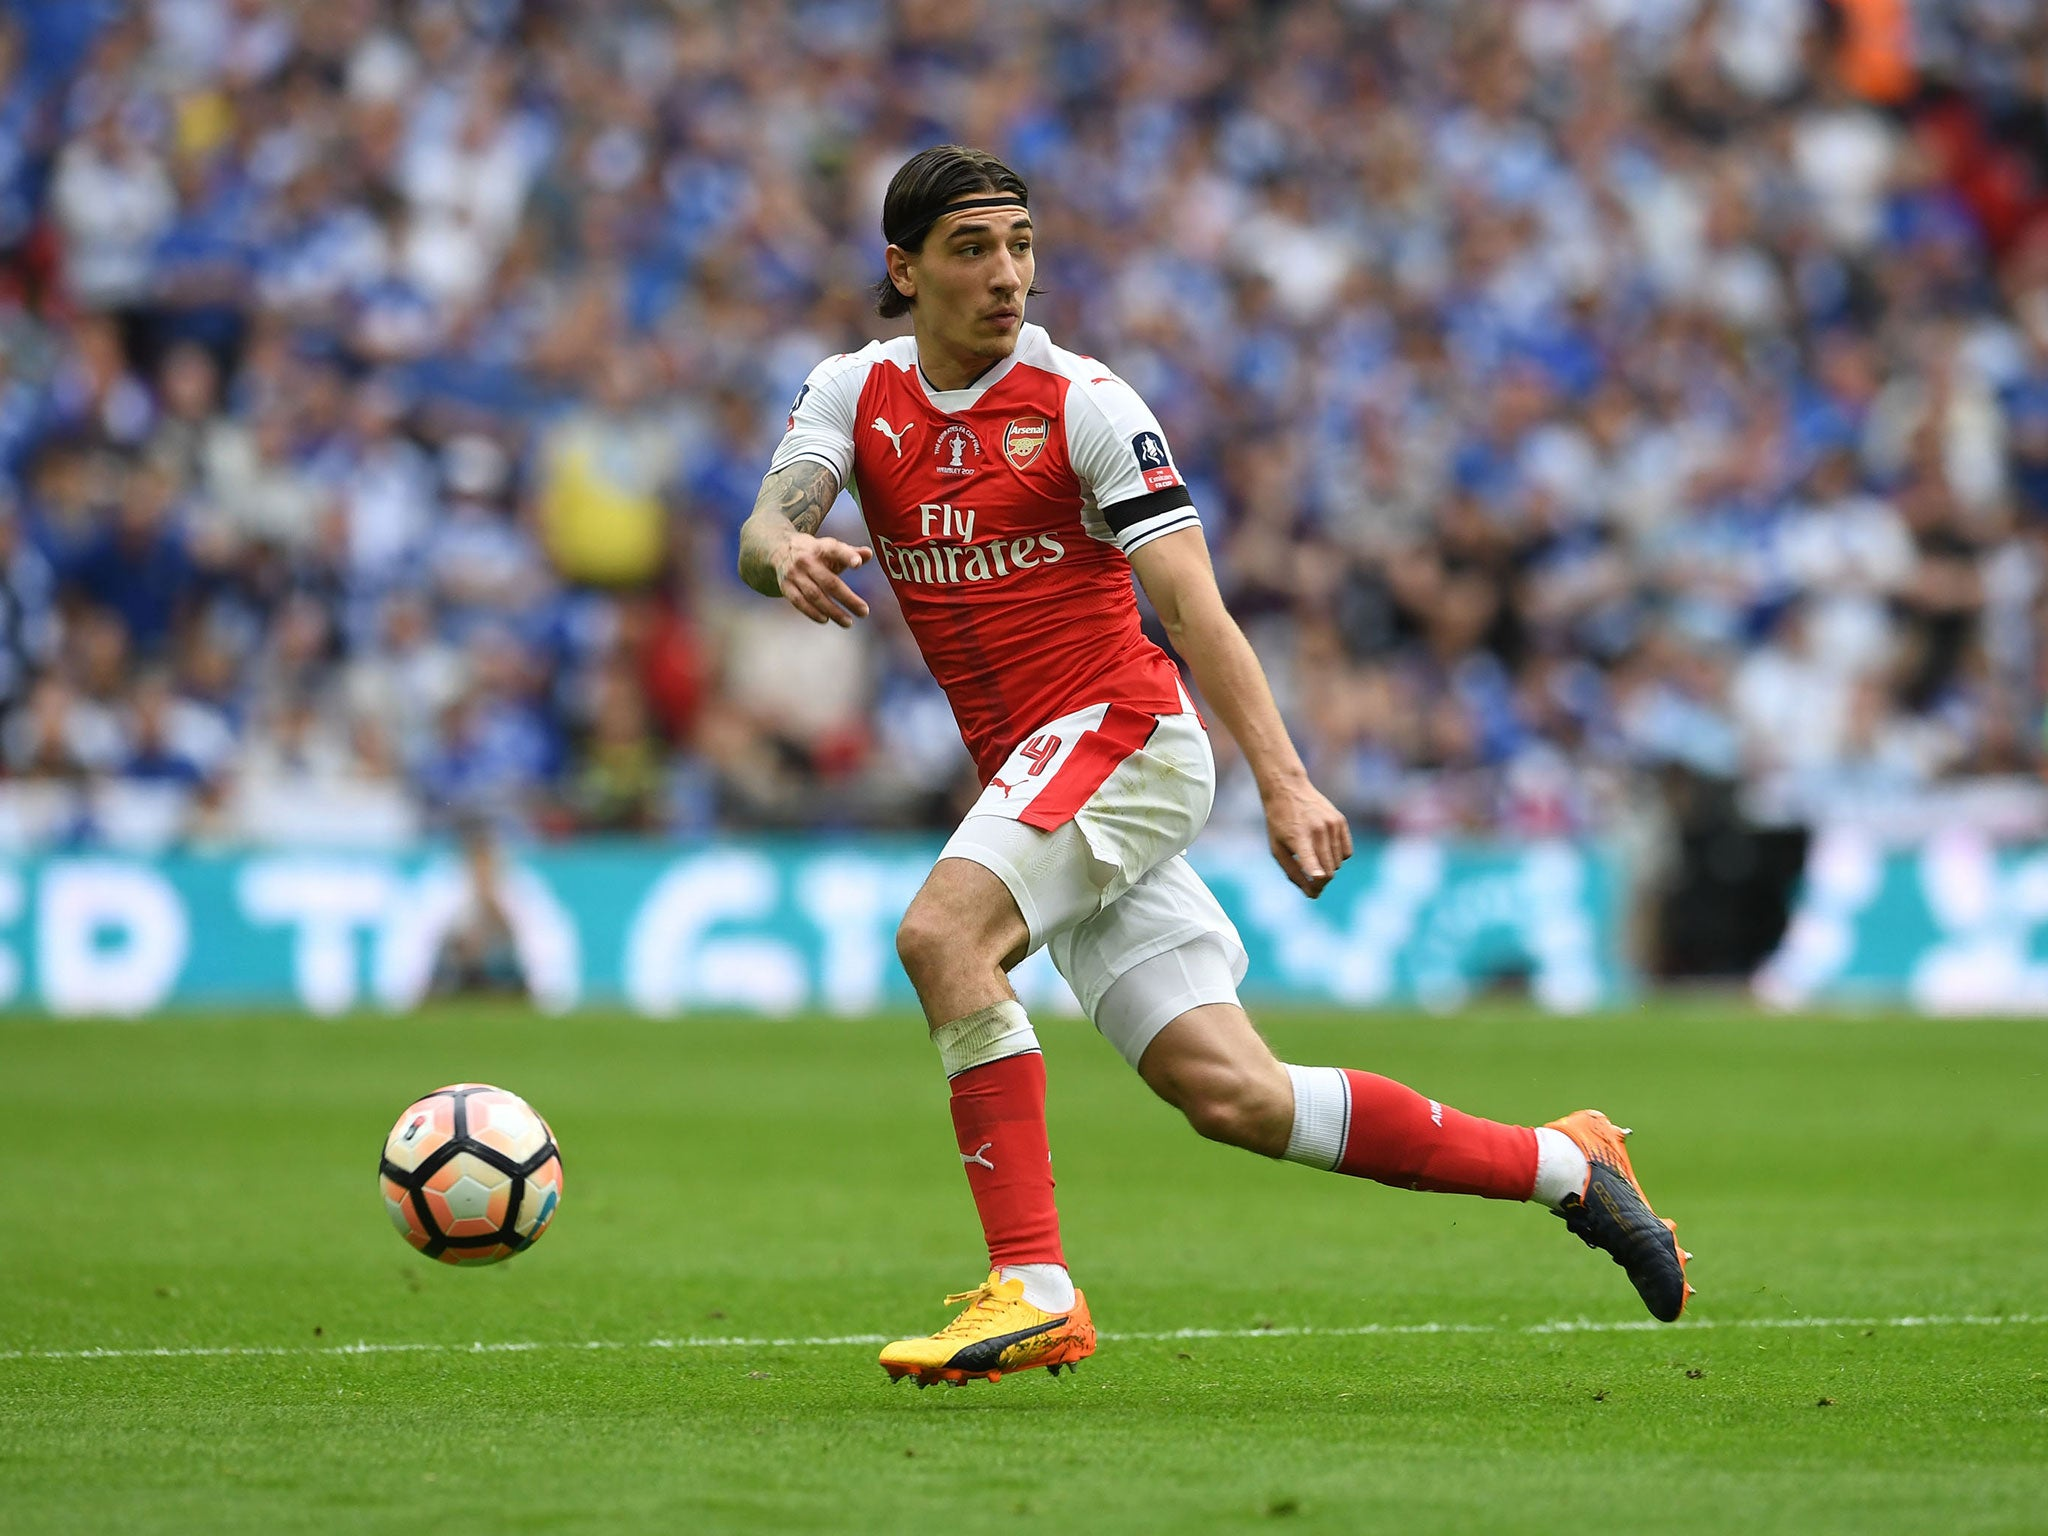 Hector Bellerin questions decision to keep Marcus Rashford out of England's U21s squad for Euro 2017